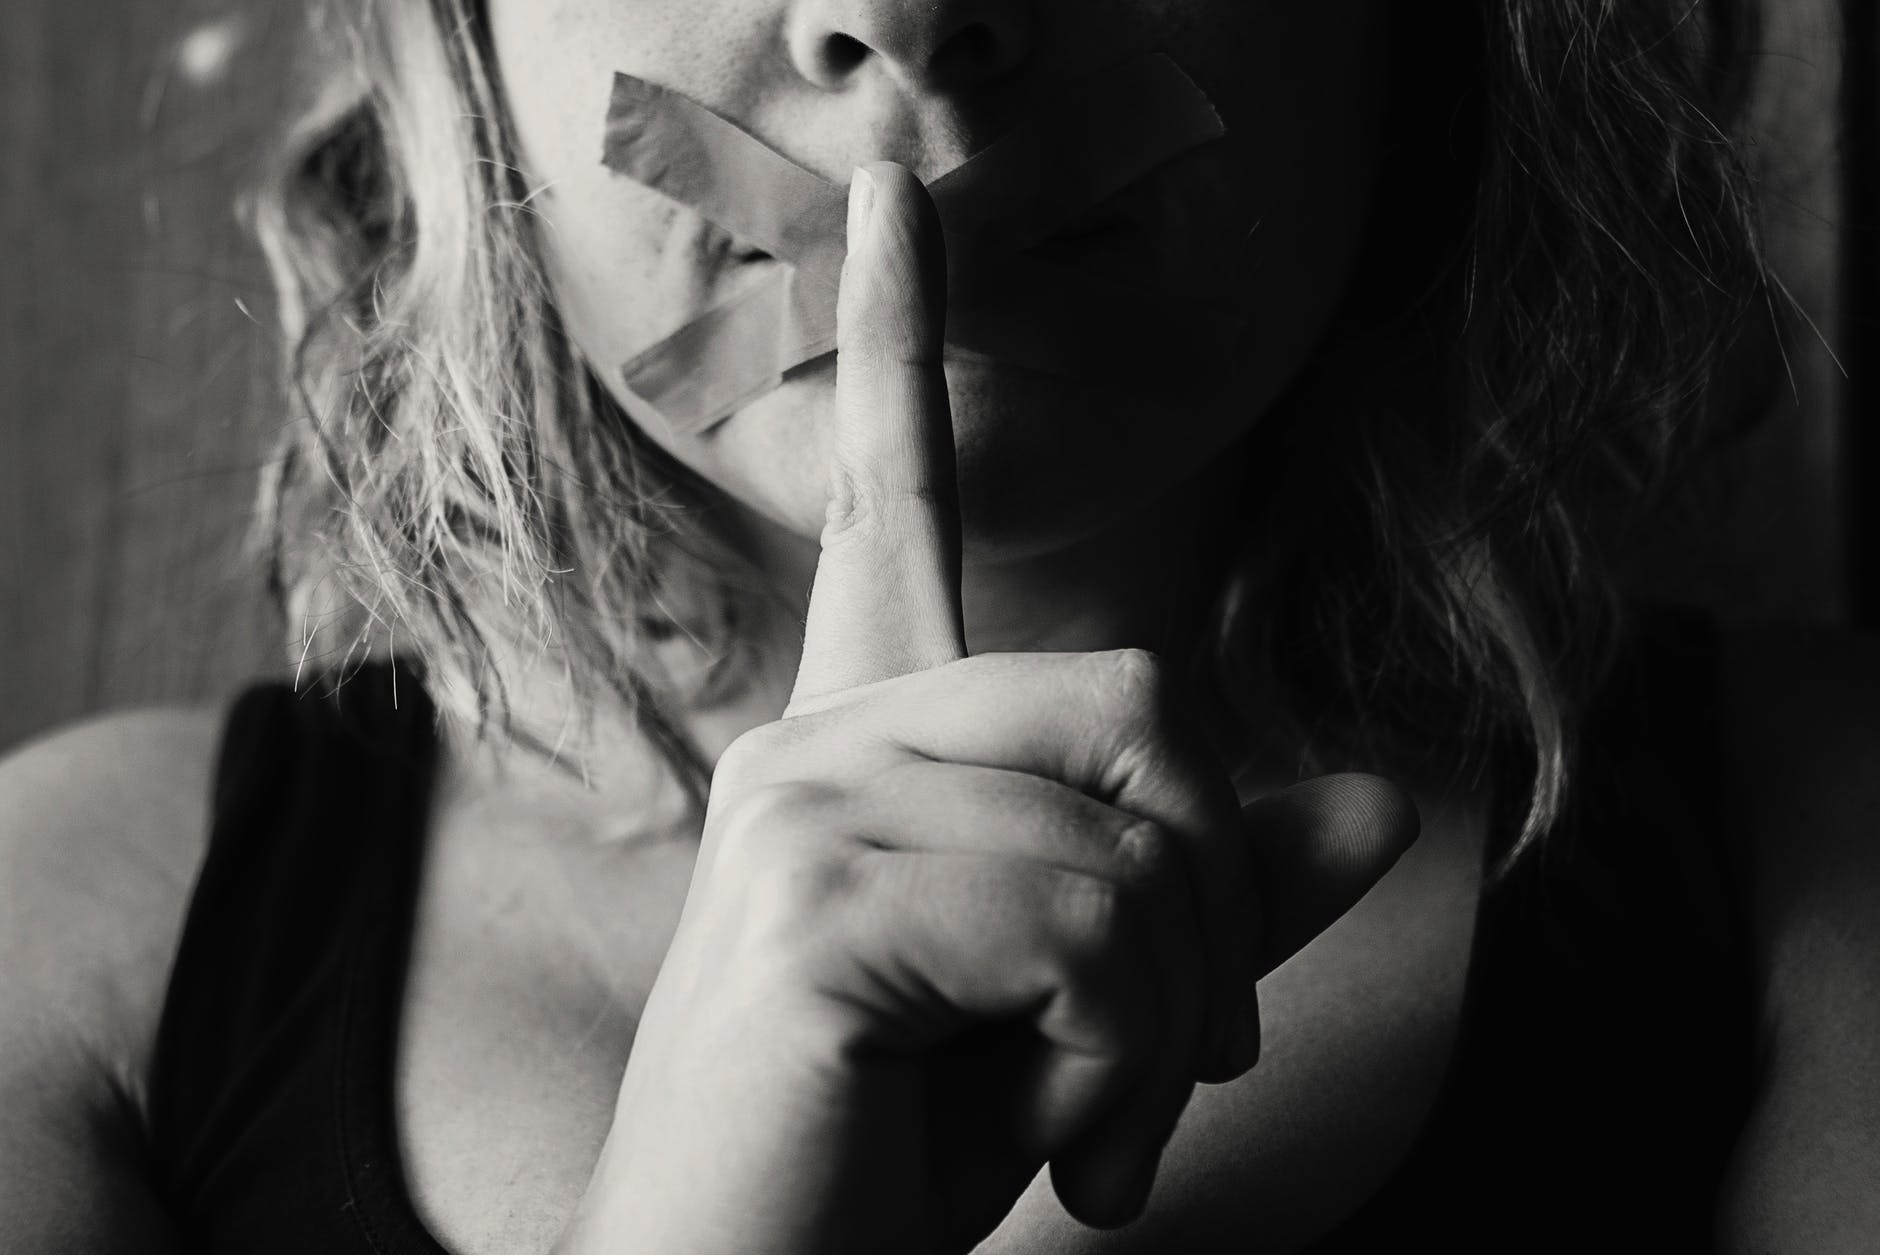 woman placing her finger between her lips